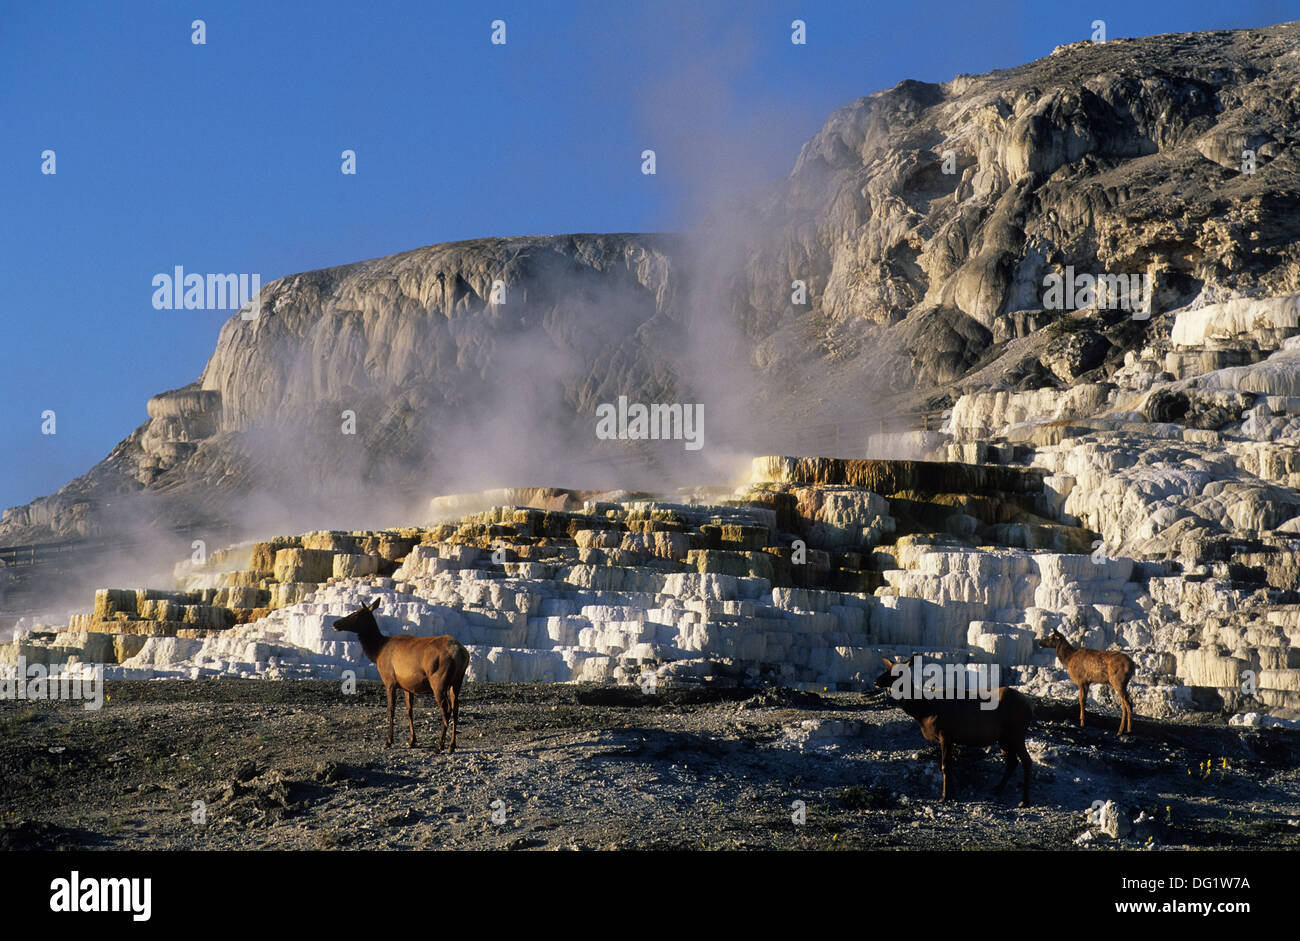 Elk265-1905 Wyoming, Yellowstone National Park, Mammoth Hot Springs, Elk resting on inactive terrace - Stock Image